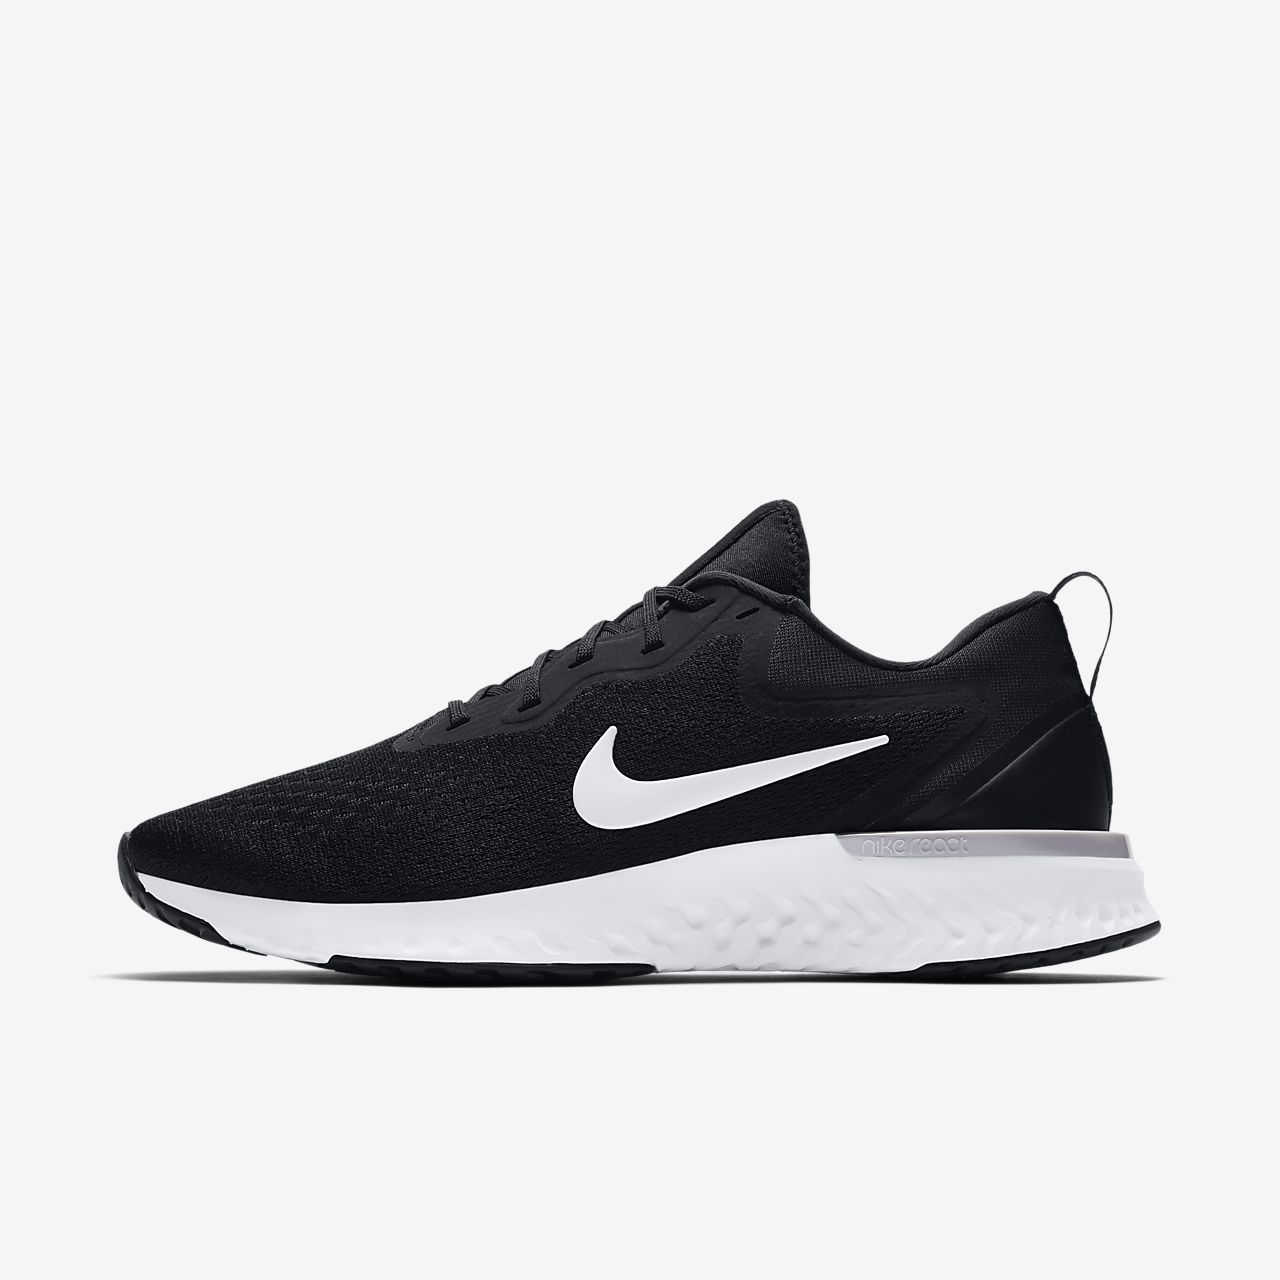 huge discount 64f20 fd203 Men s Running Shoe. Nike Odyssey React